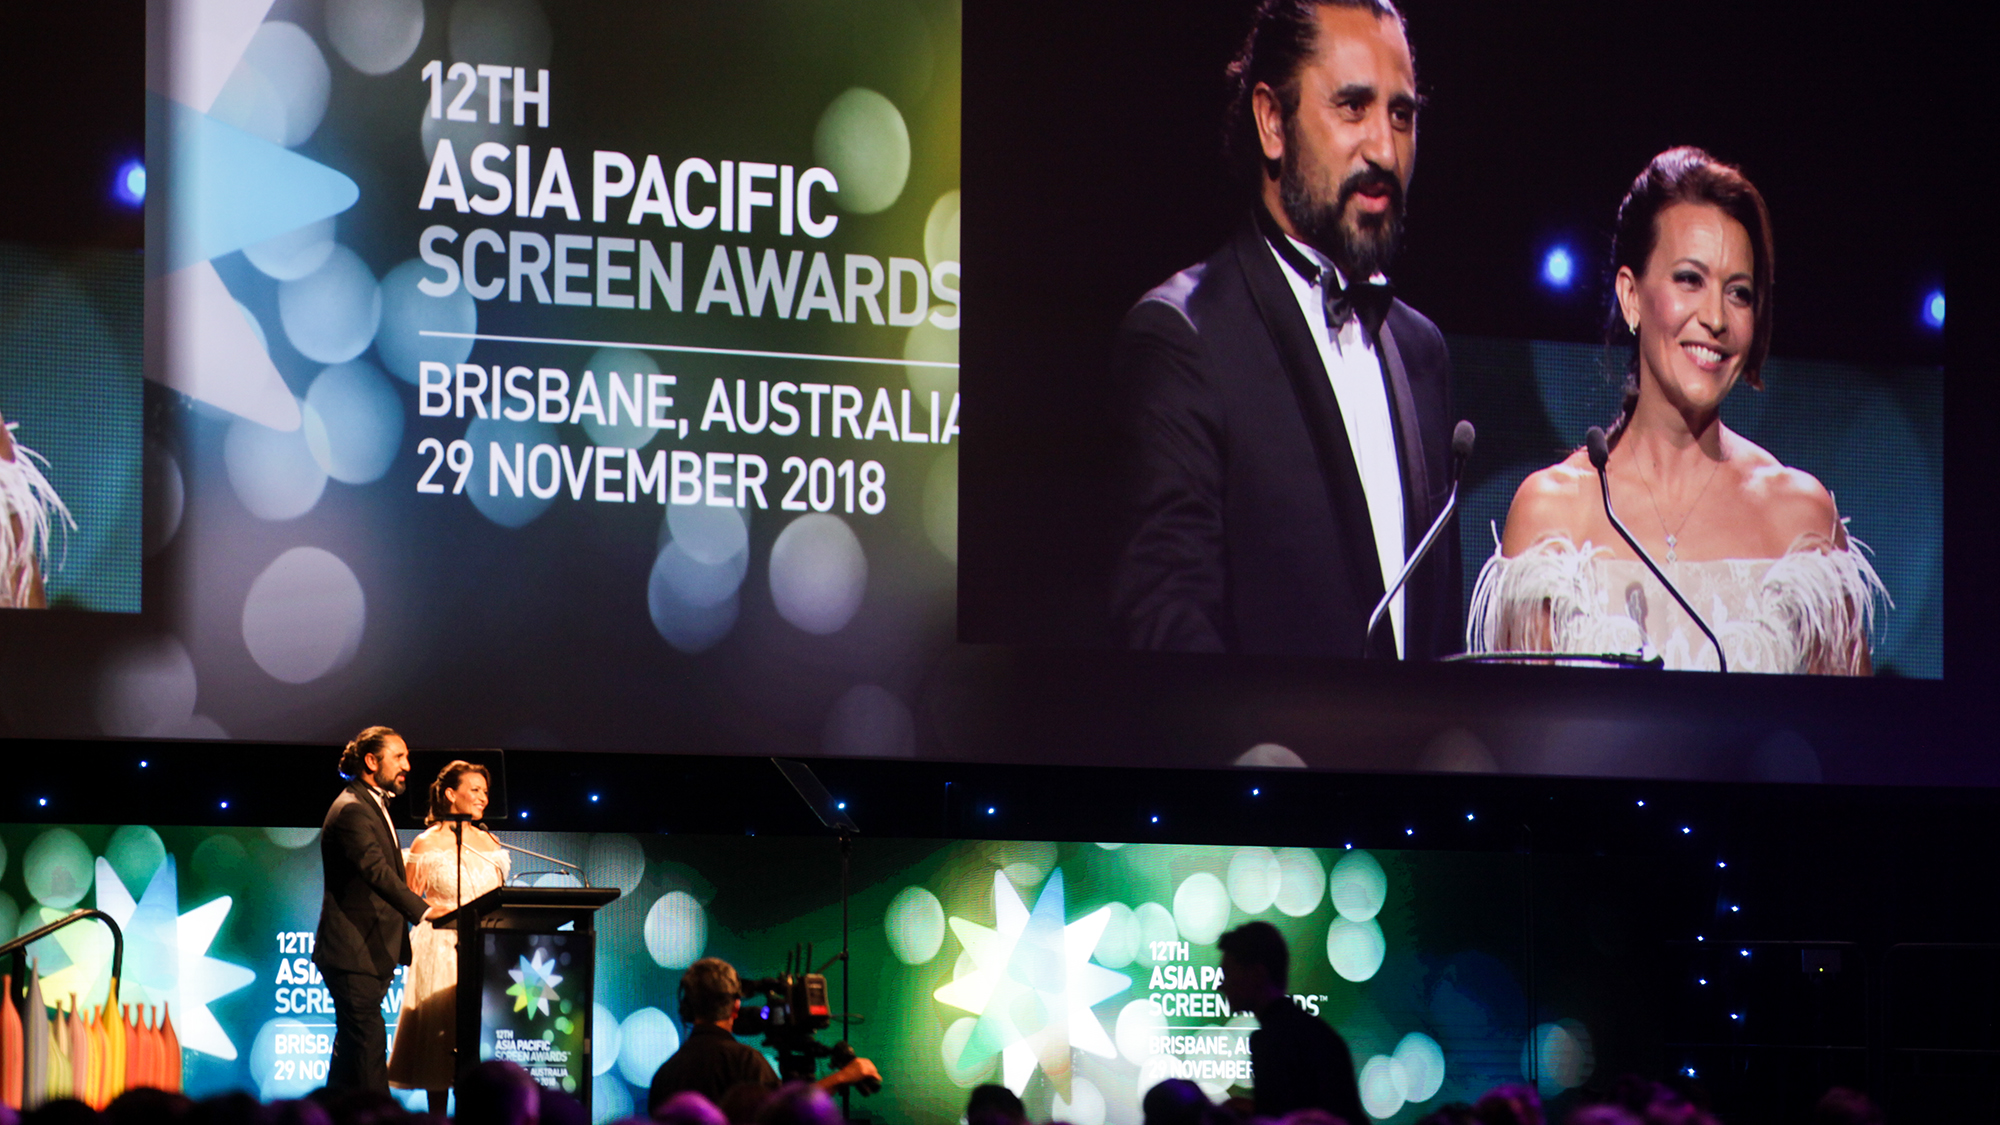 Hosts for the Asia Pacific Screen Awards Sofie Formica and Cliff Curtis at the Brisbane Exhibition & Entertainment Centre